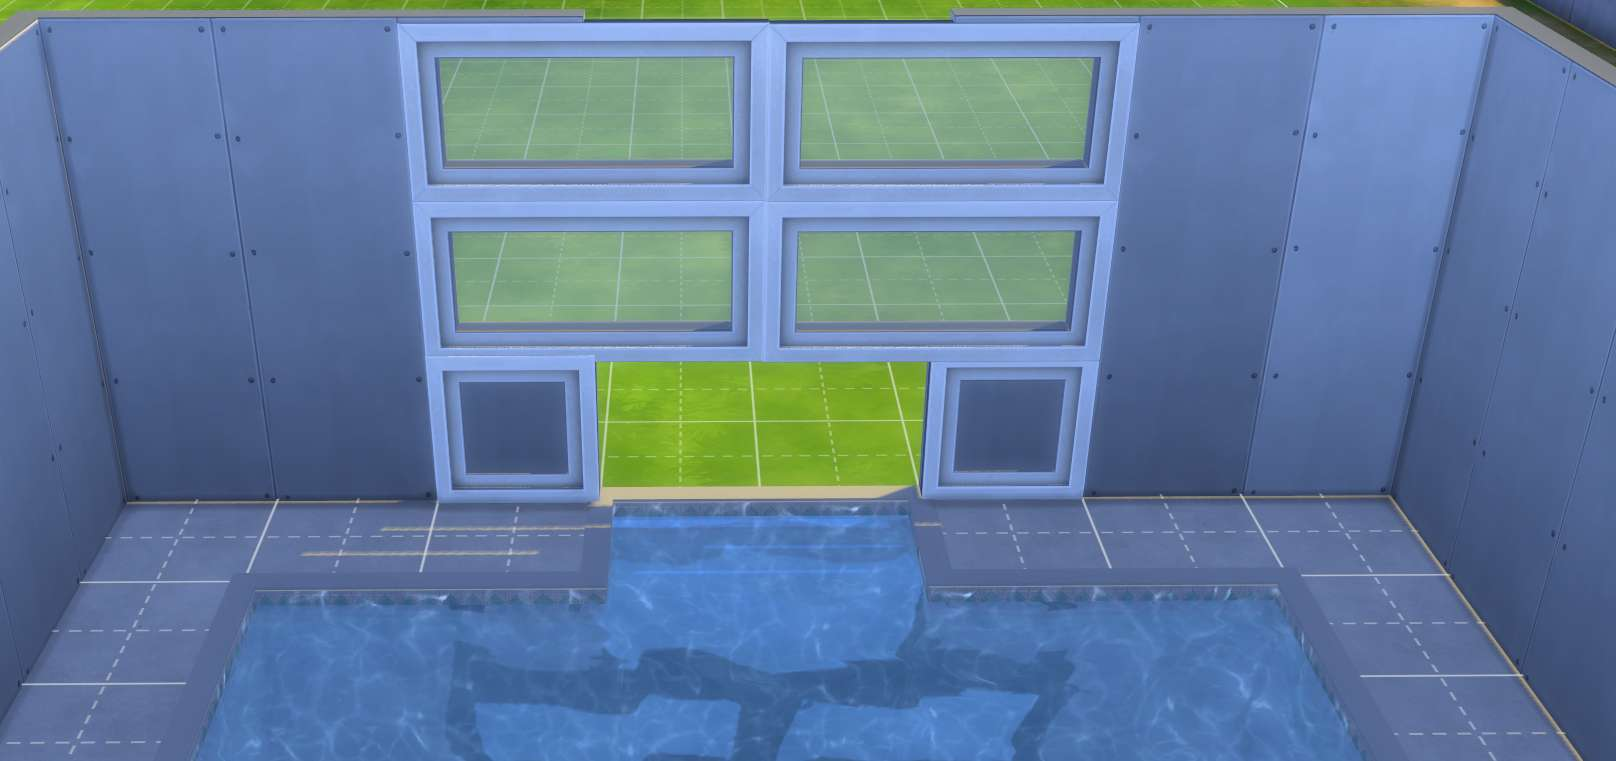 The sims 4 building landscaping pools indoor outdoor for How to build an indoor pool